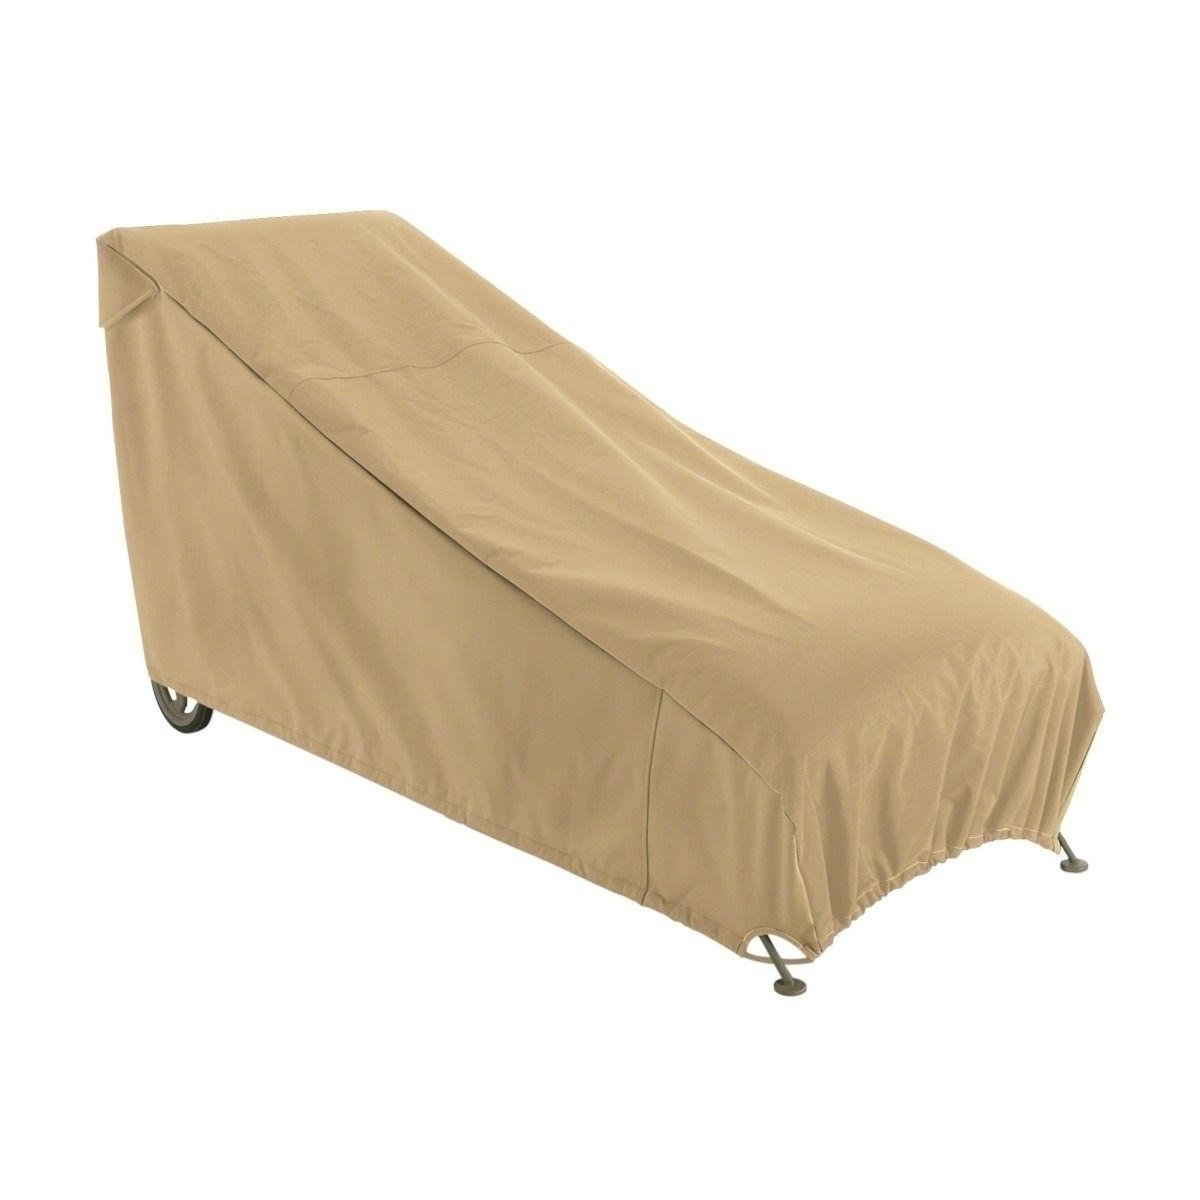 Compare chaise lounge cover with elastic hem cord for Chaise lounge cover